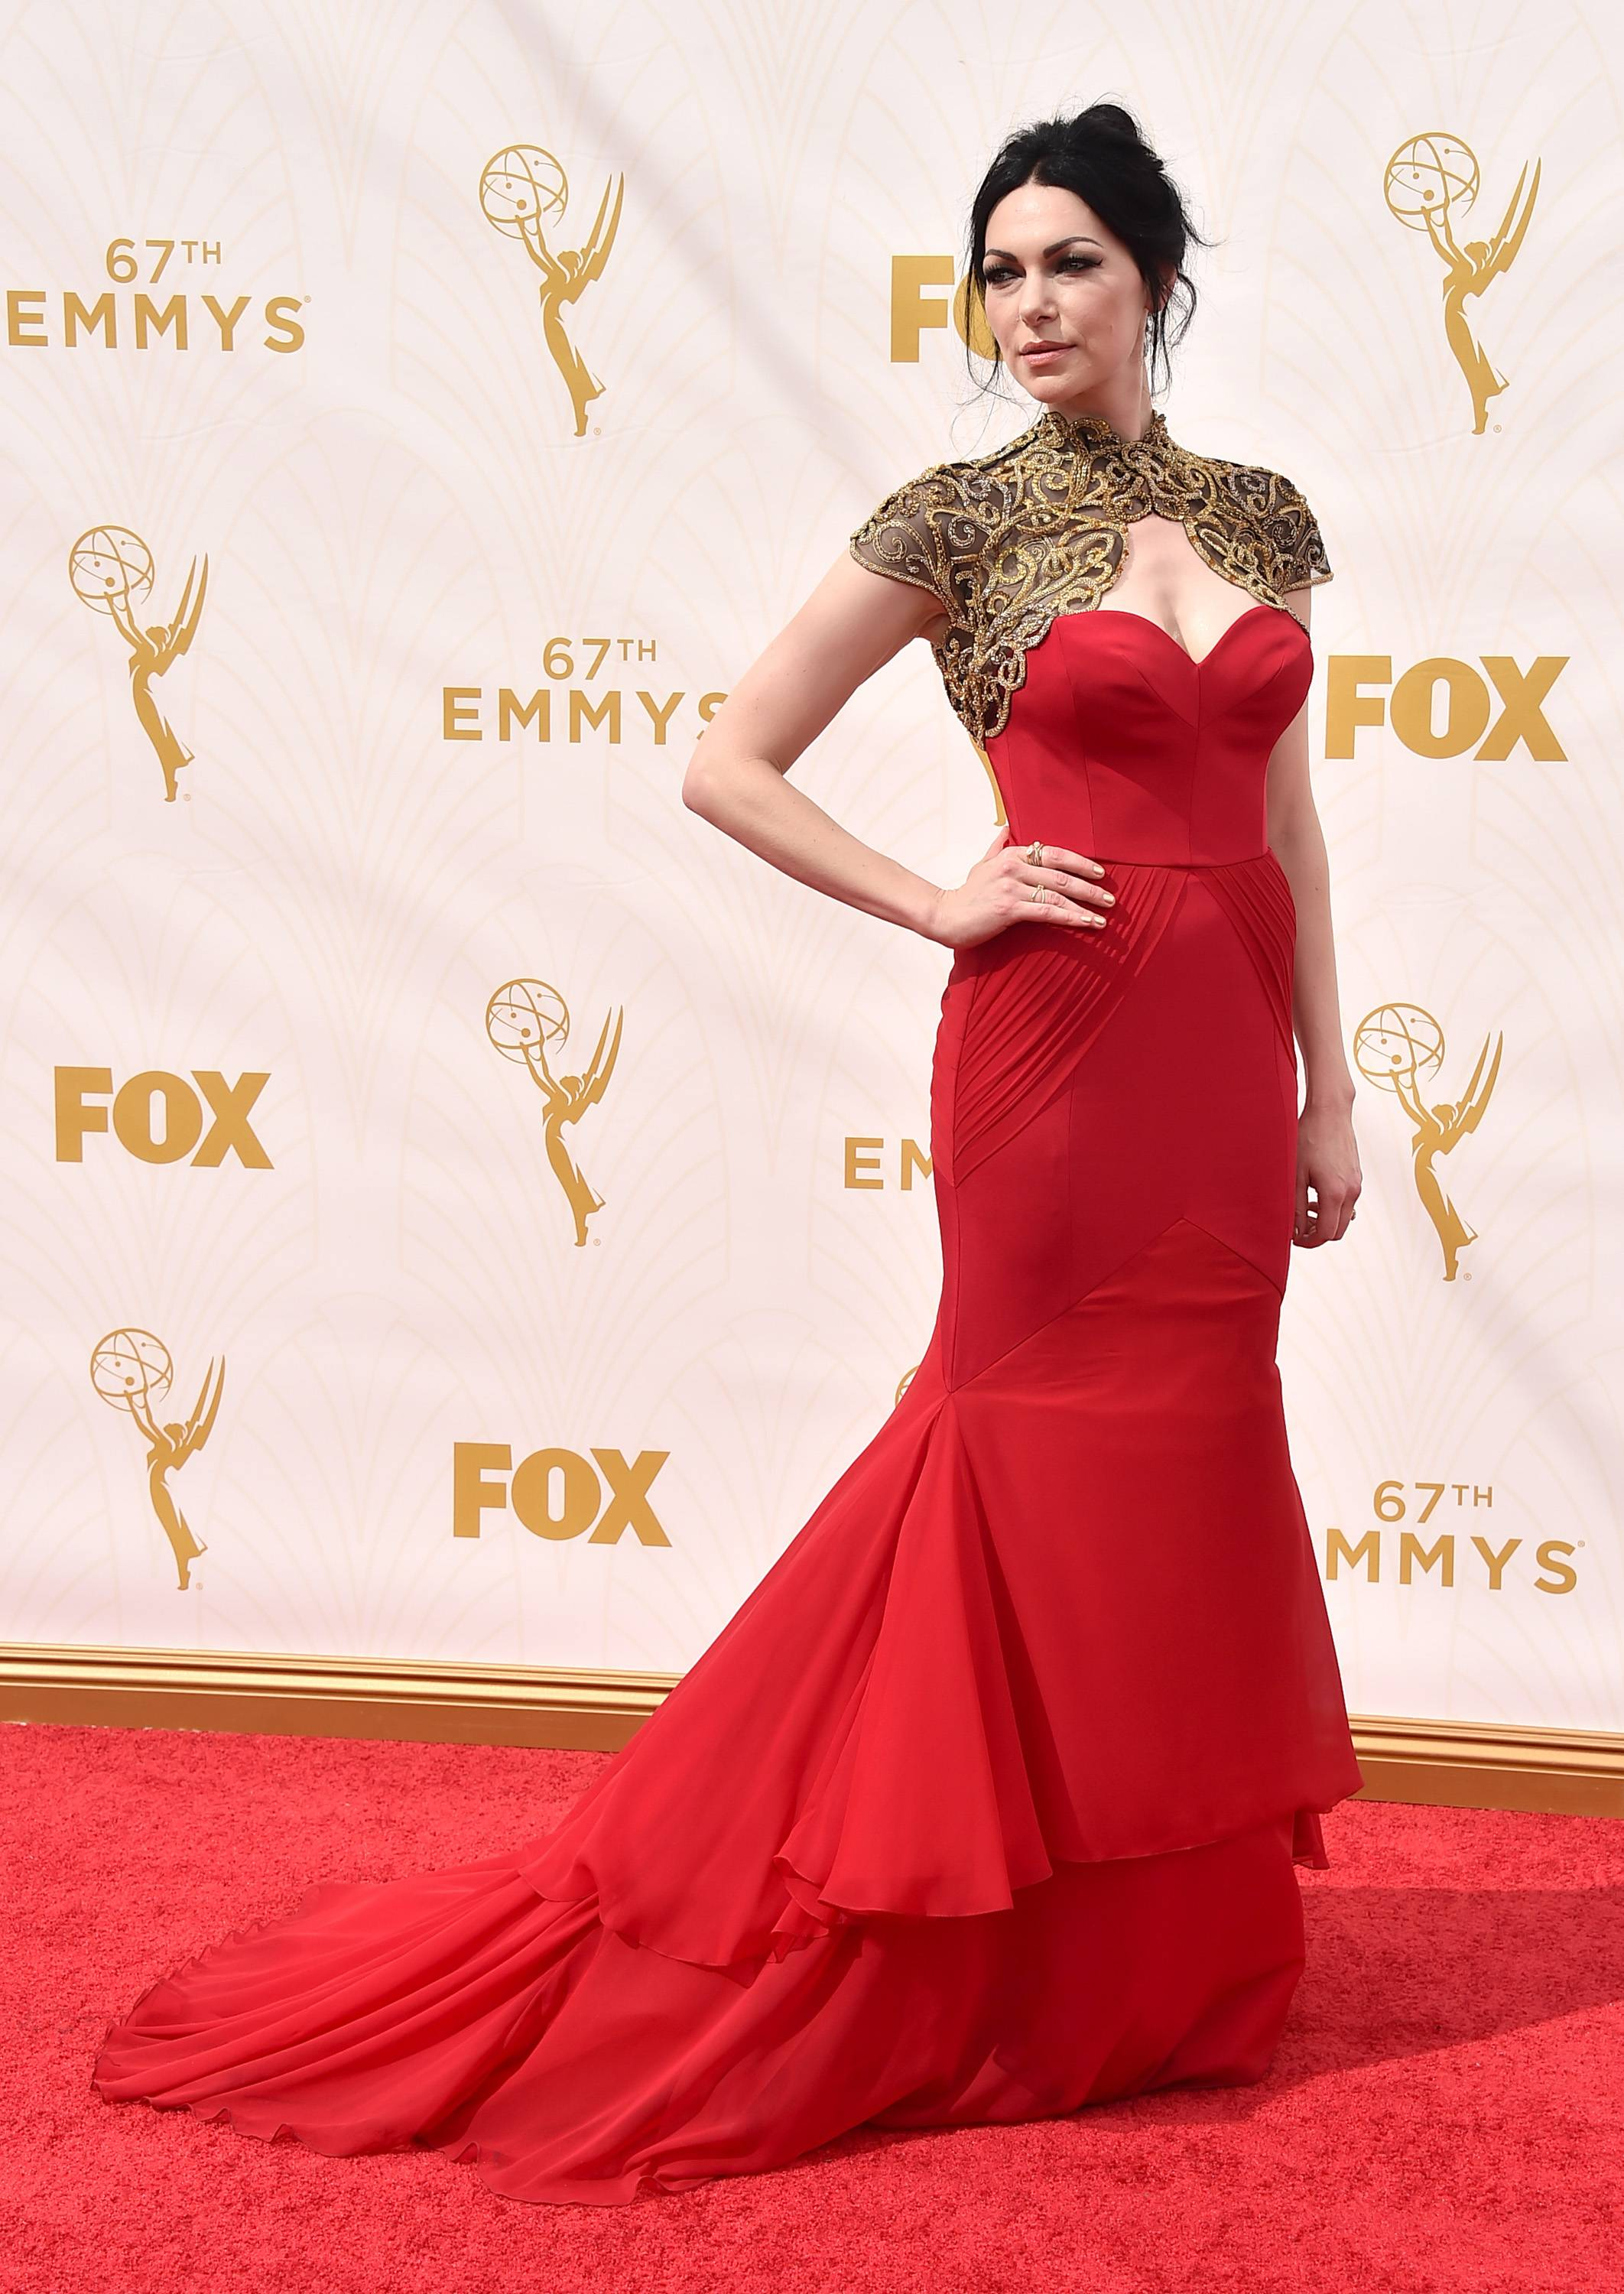 Daytime Emmy Awards 2018 Red Carpet Fashion: See All the 8